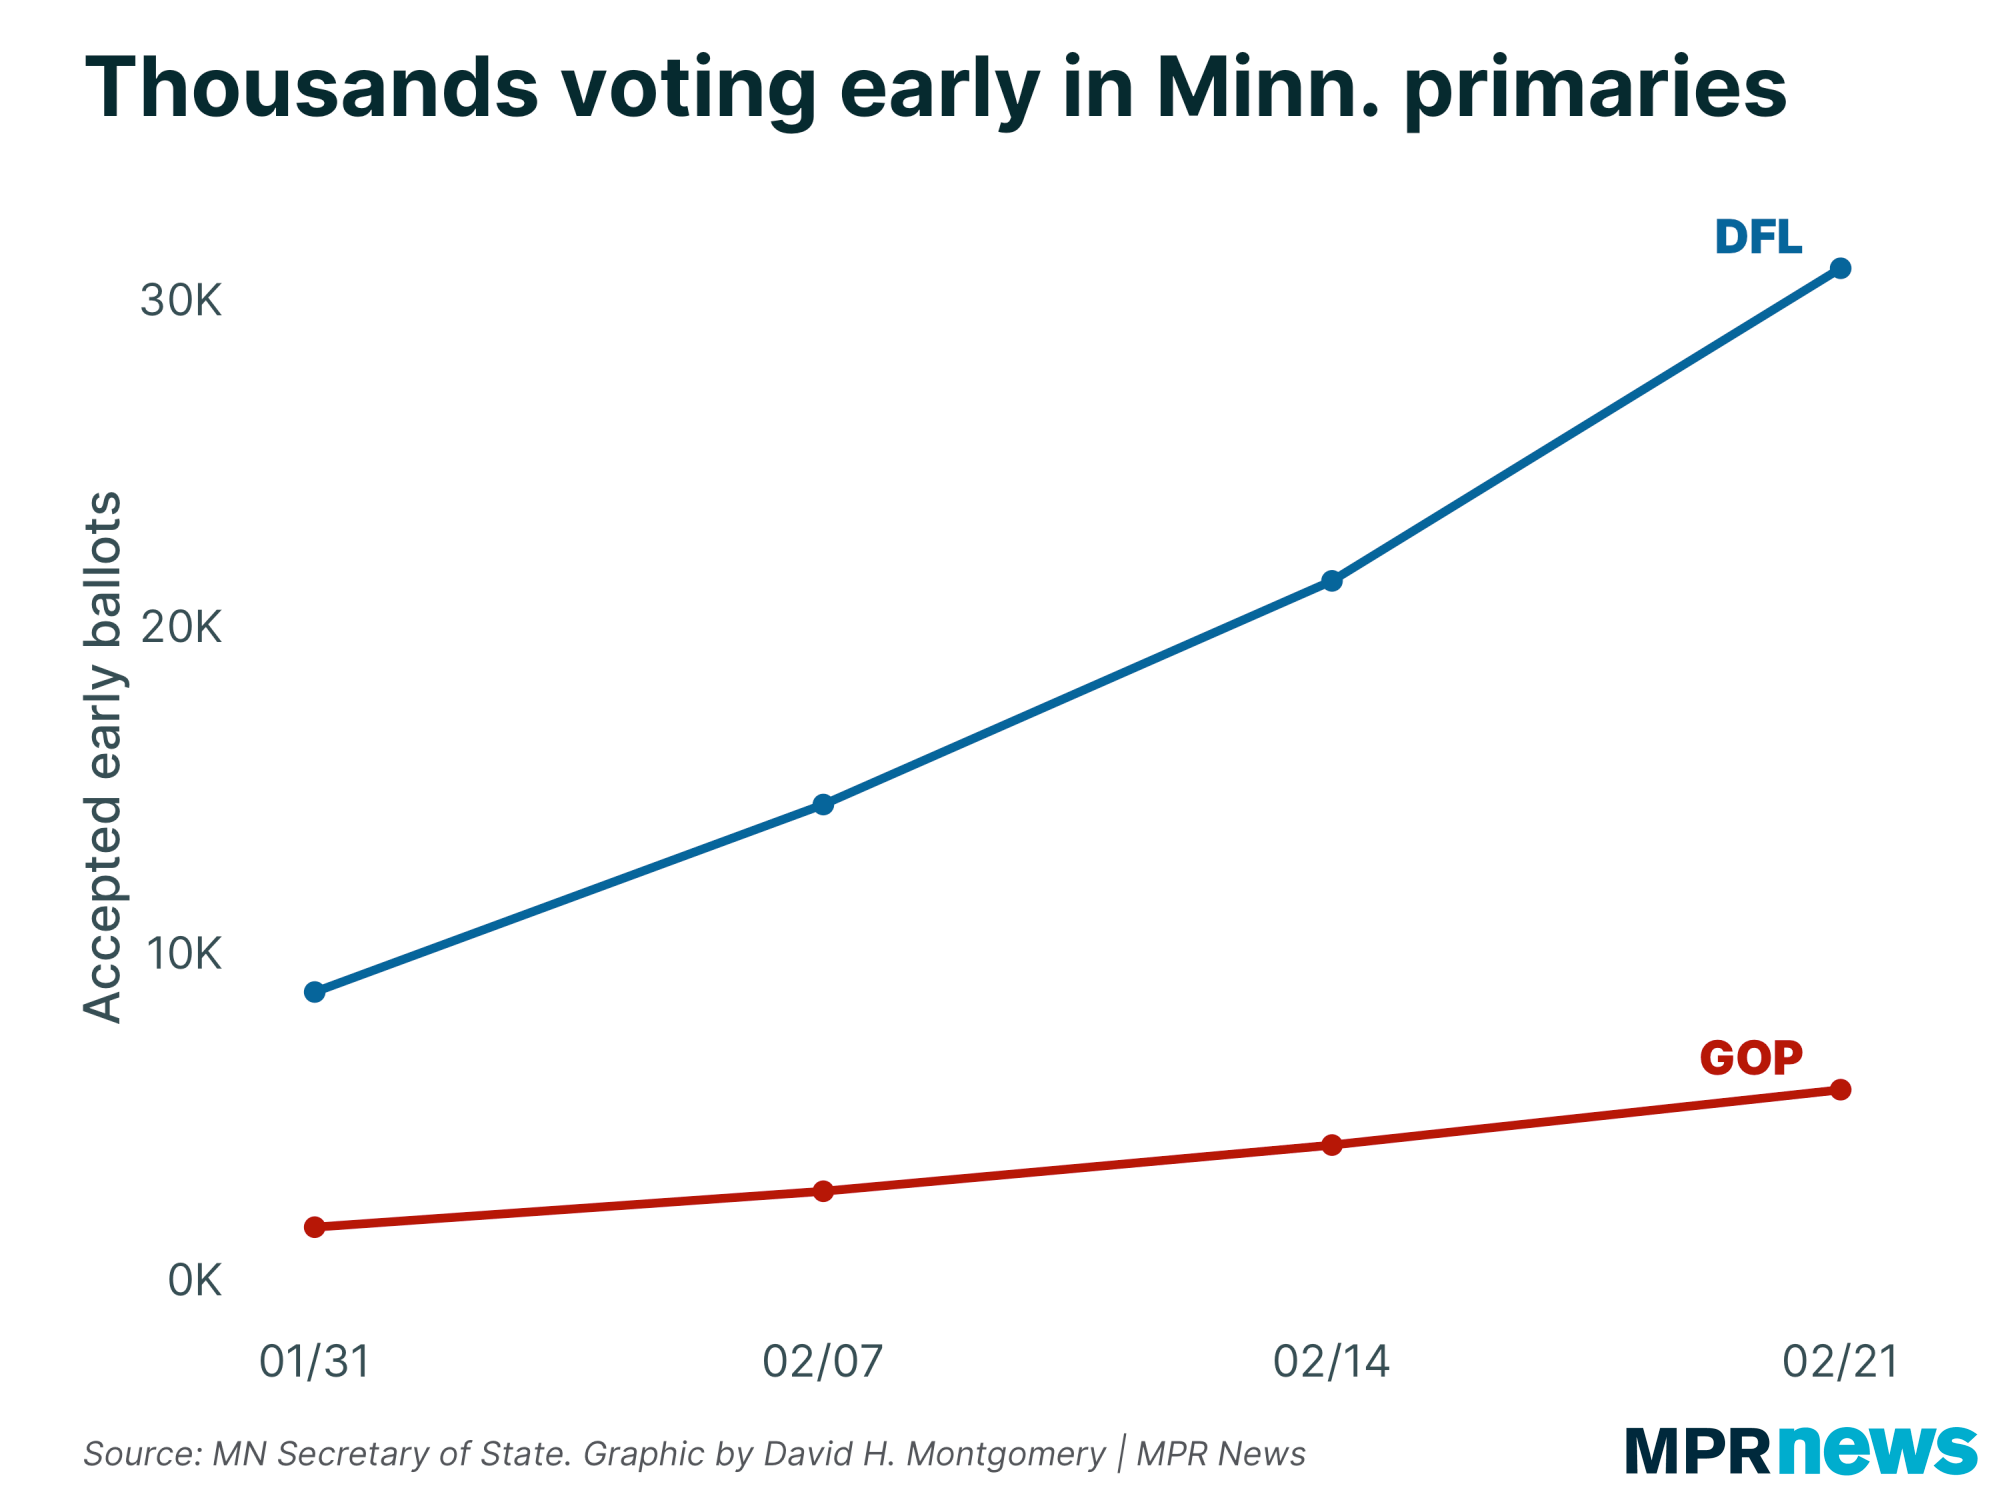 Thousands voting early in Minnesota primaries